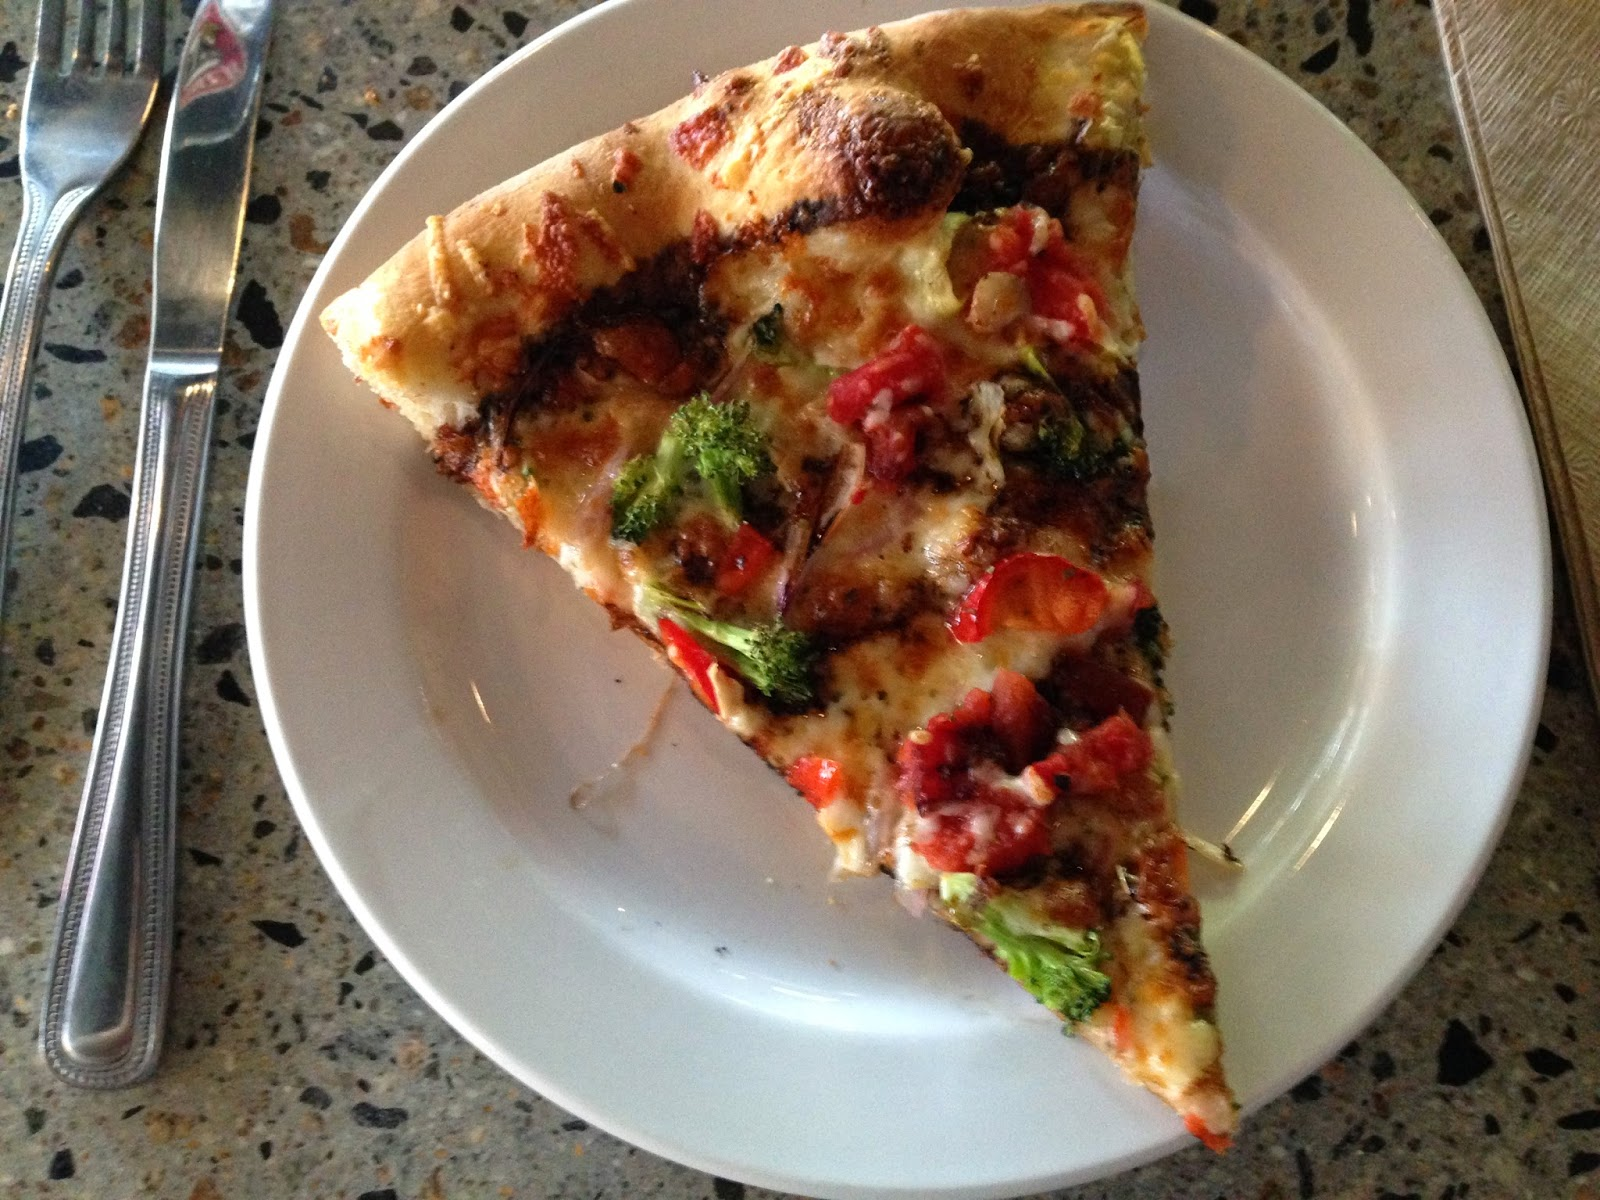 Balsamic Veggie pizza from The Community Oven in Hampton, NH | The Economical Eater